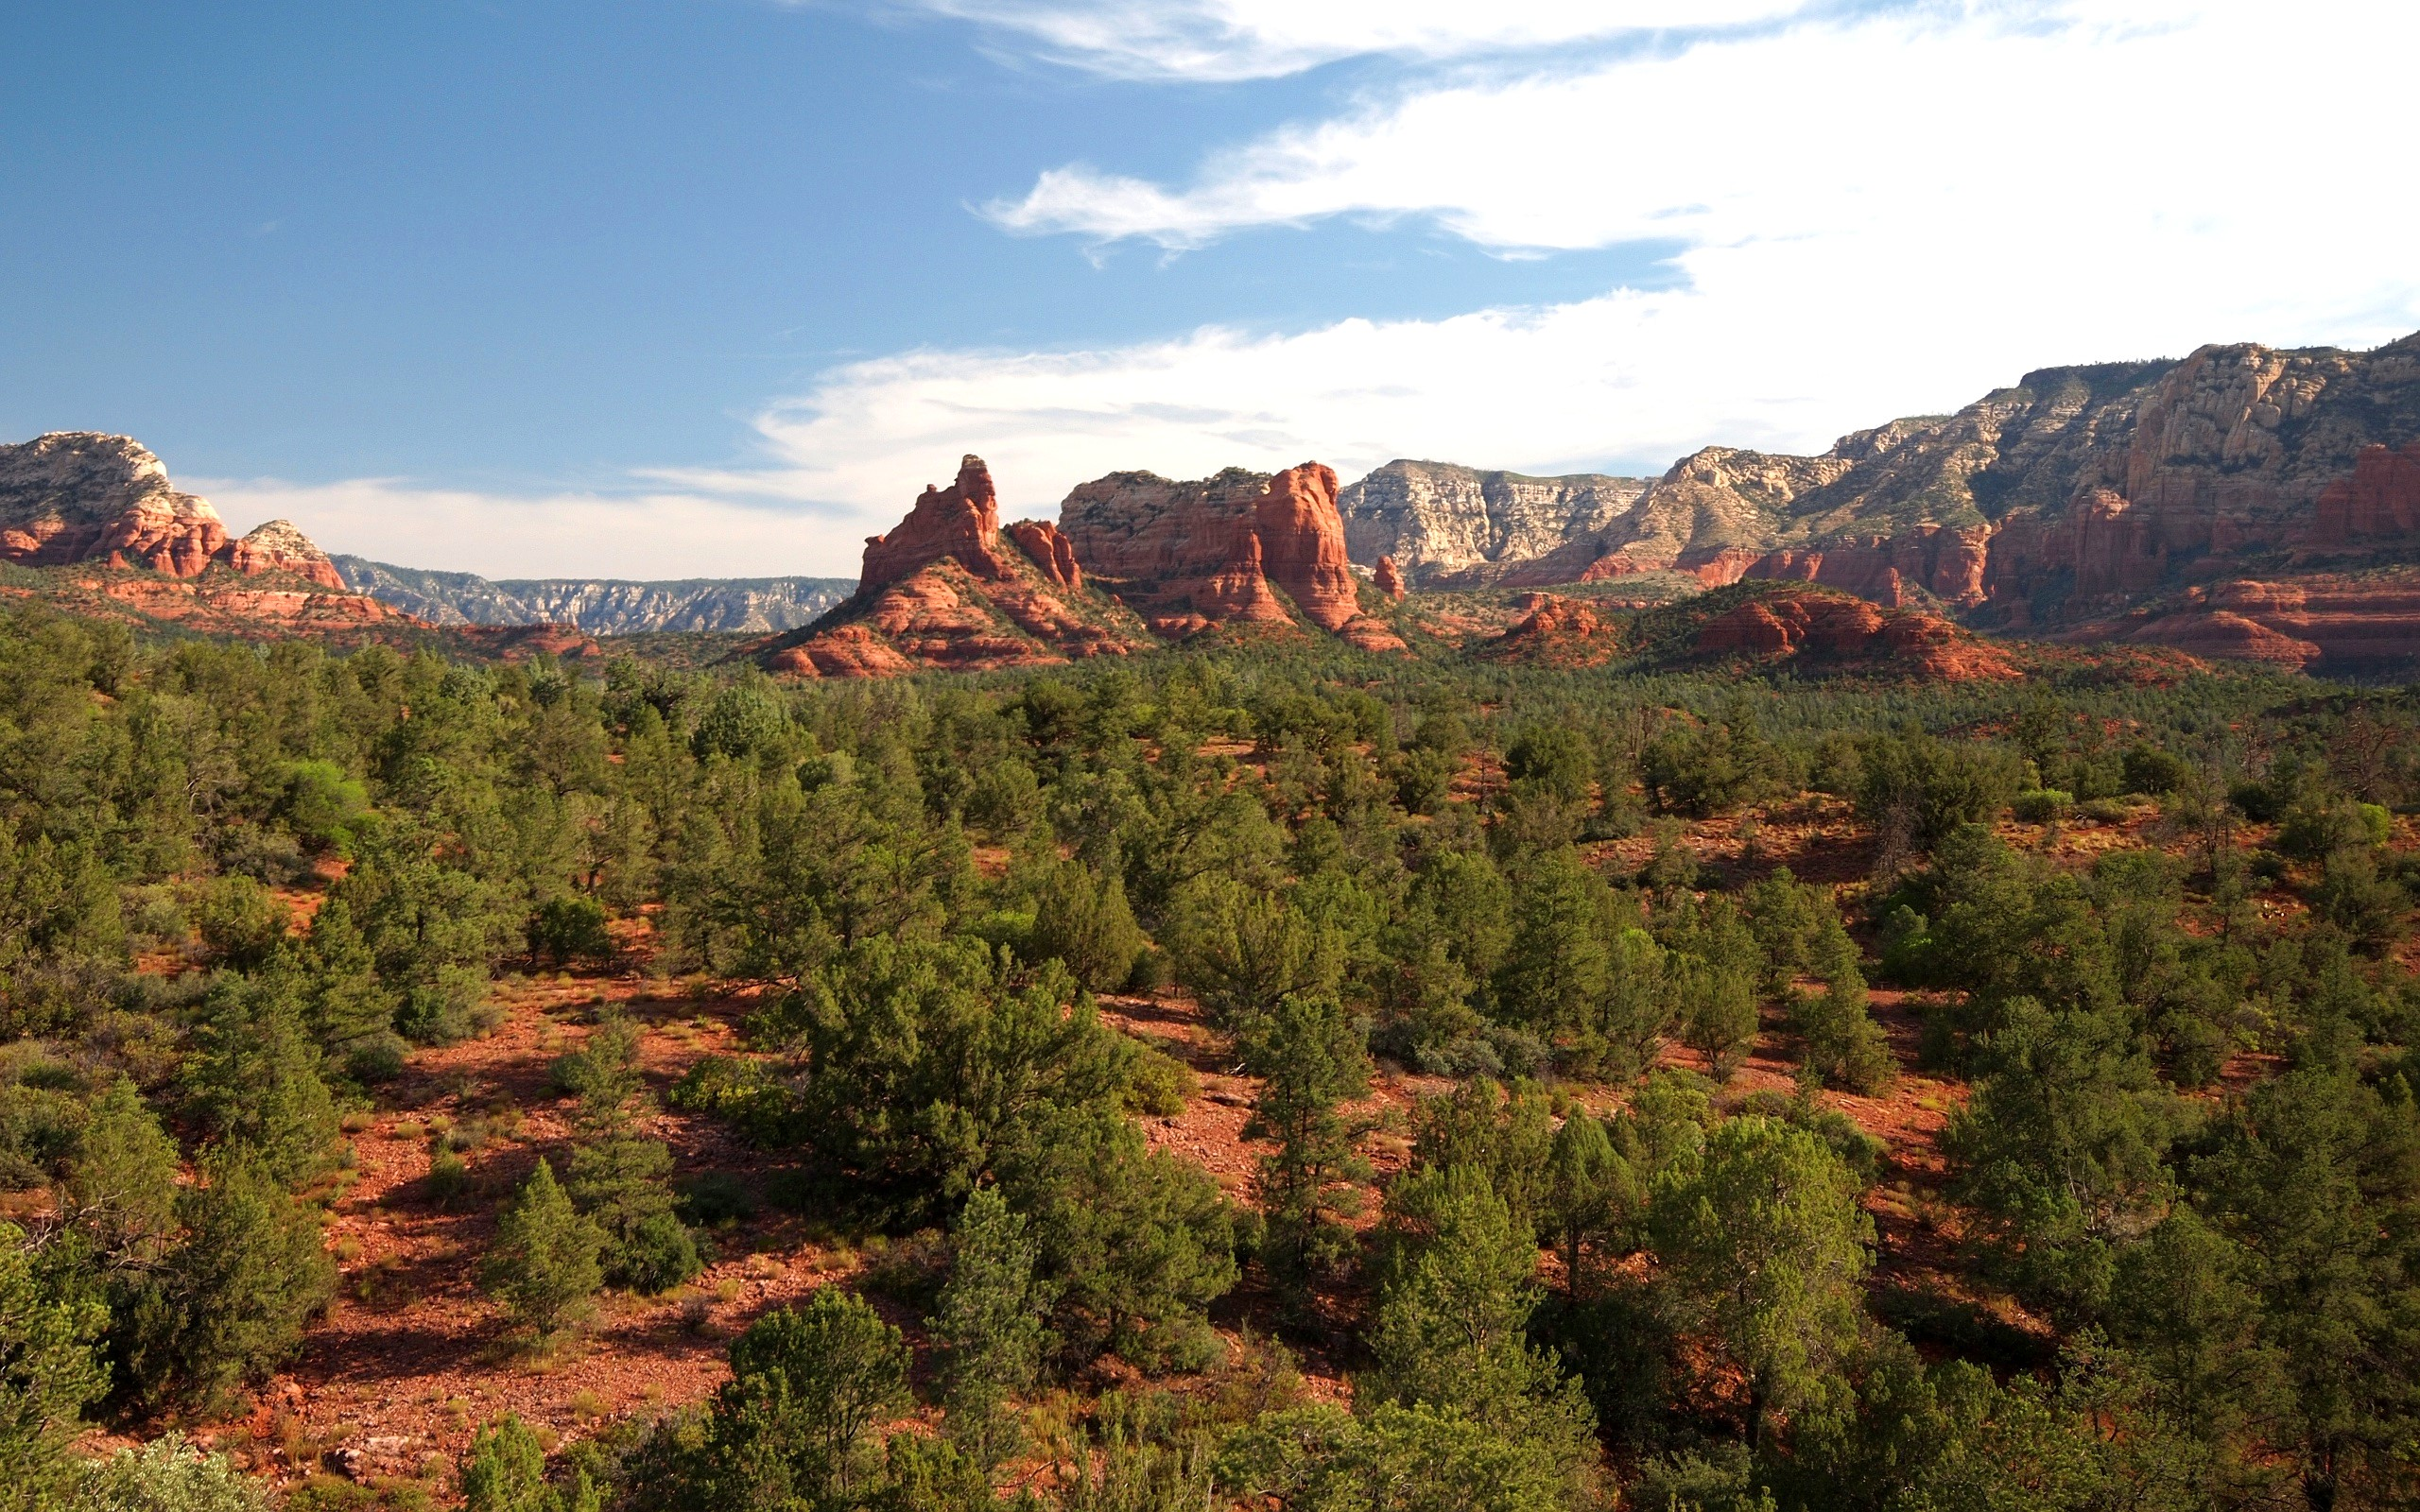 File:Sedona Arizona-27527-5.jpg